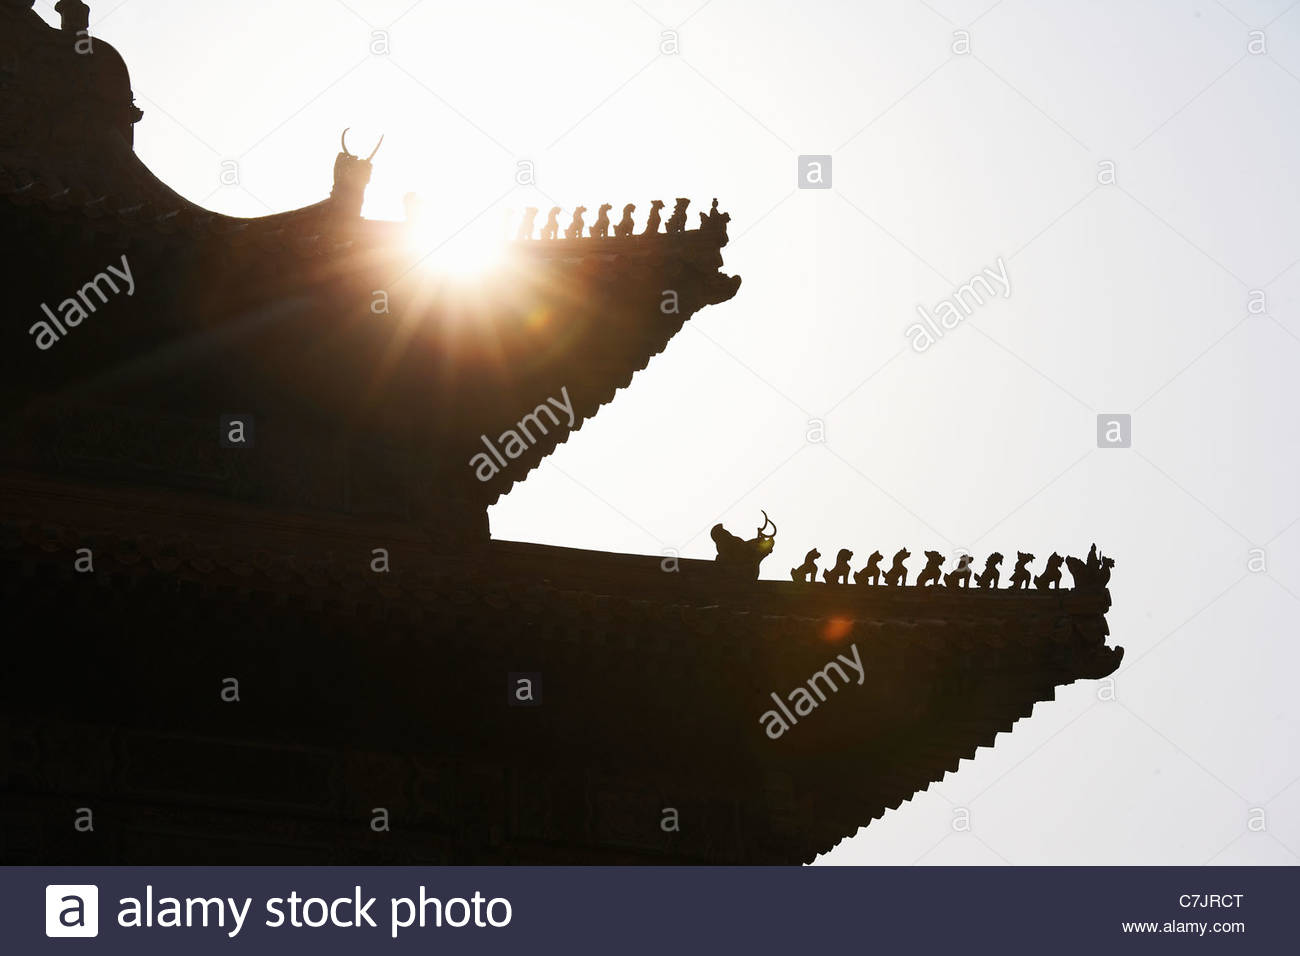 Silhouette of roof of Chinese building - Stock Image